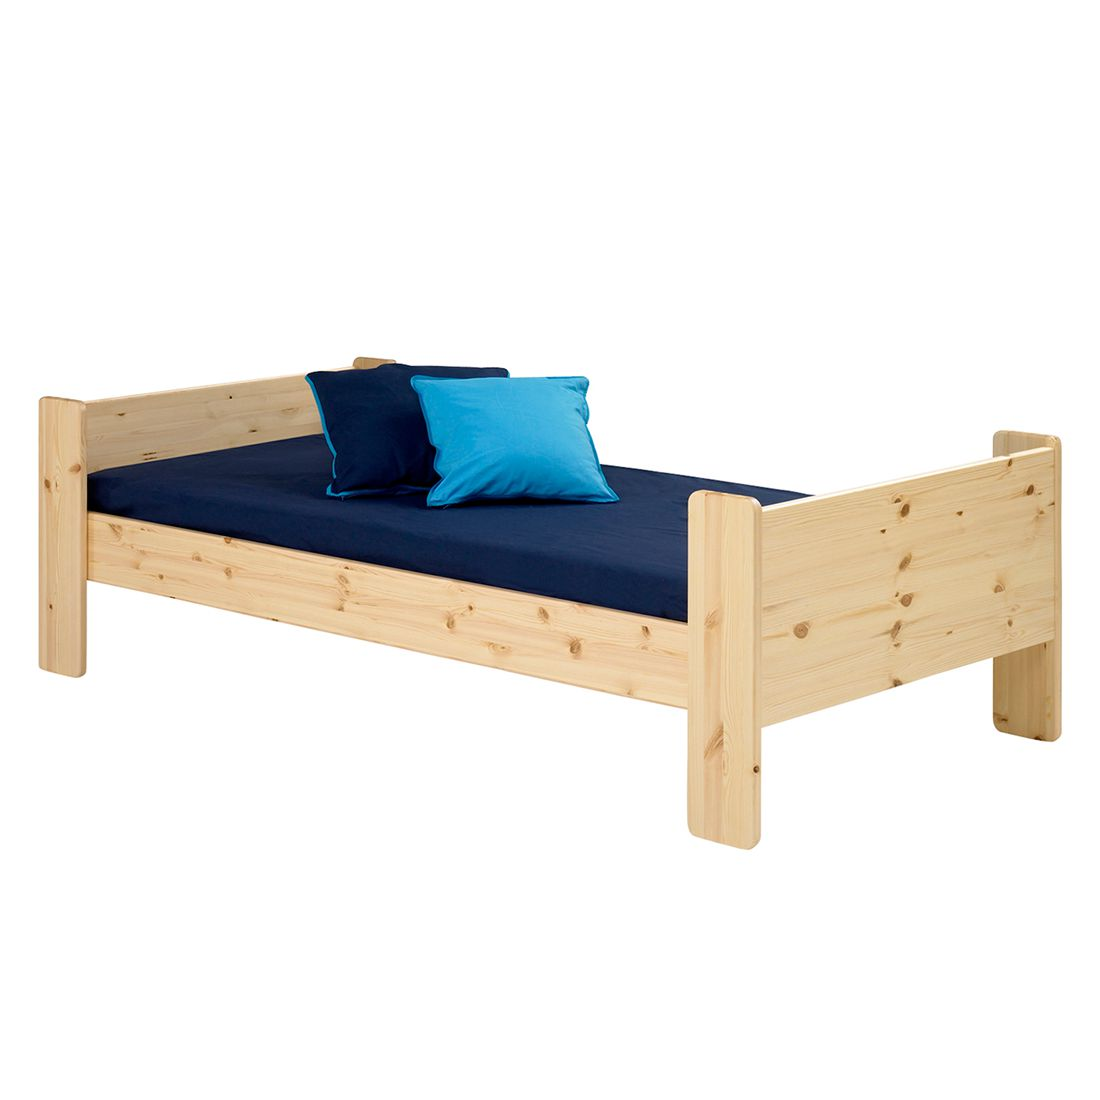 Einzelbett Steens for Kids - Kiefer massiv - Natur, Steens